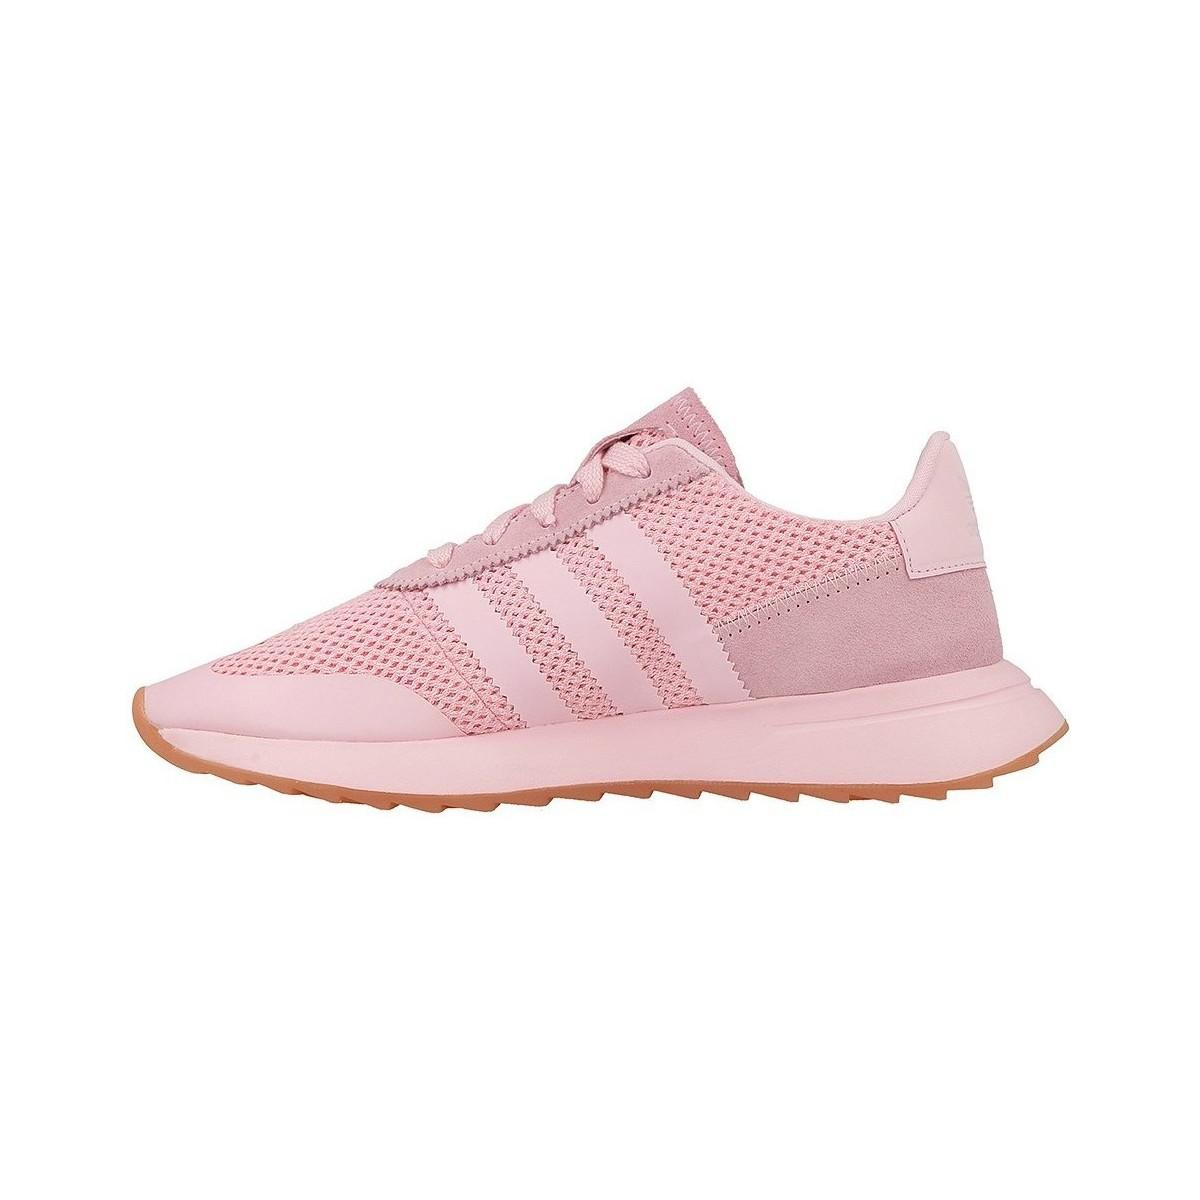 adidas Flb W Women's Shoes (trainers) In Pink